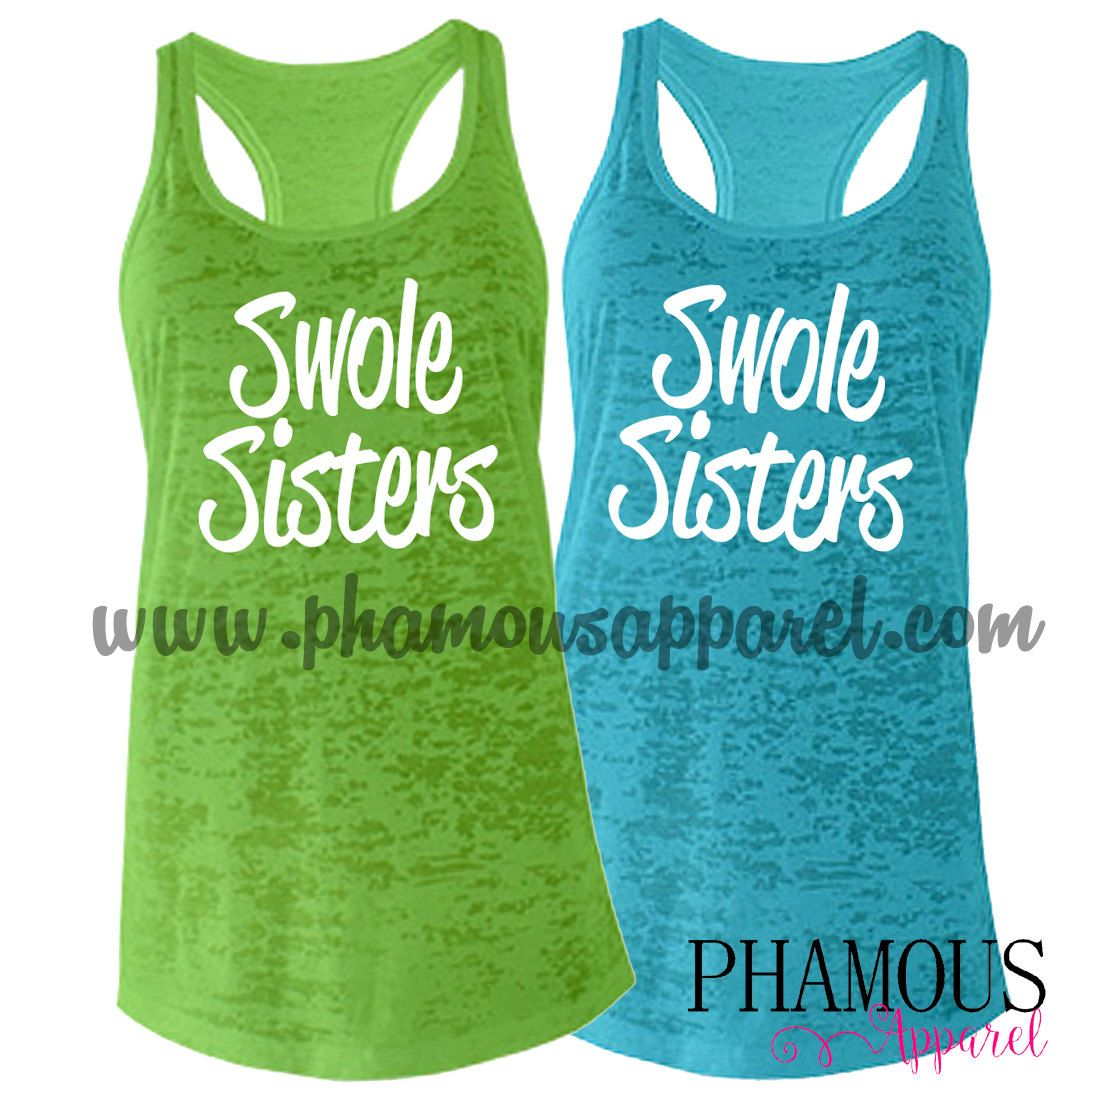 Swole Sisters (1 tank only) Ladies Burnout Racerback Tank Top. Women's Workout Tank Top. Workout Buddy. Swole Mates. Gym Friend. (23.00 USD) by PhamousApparel